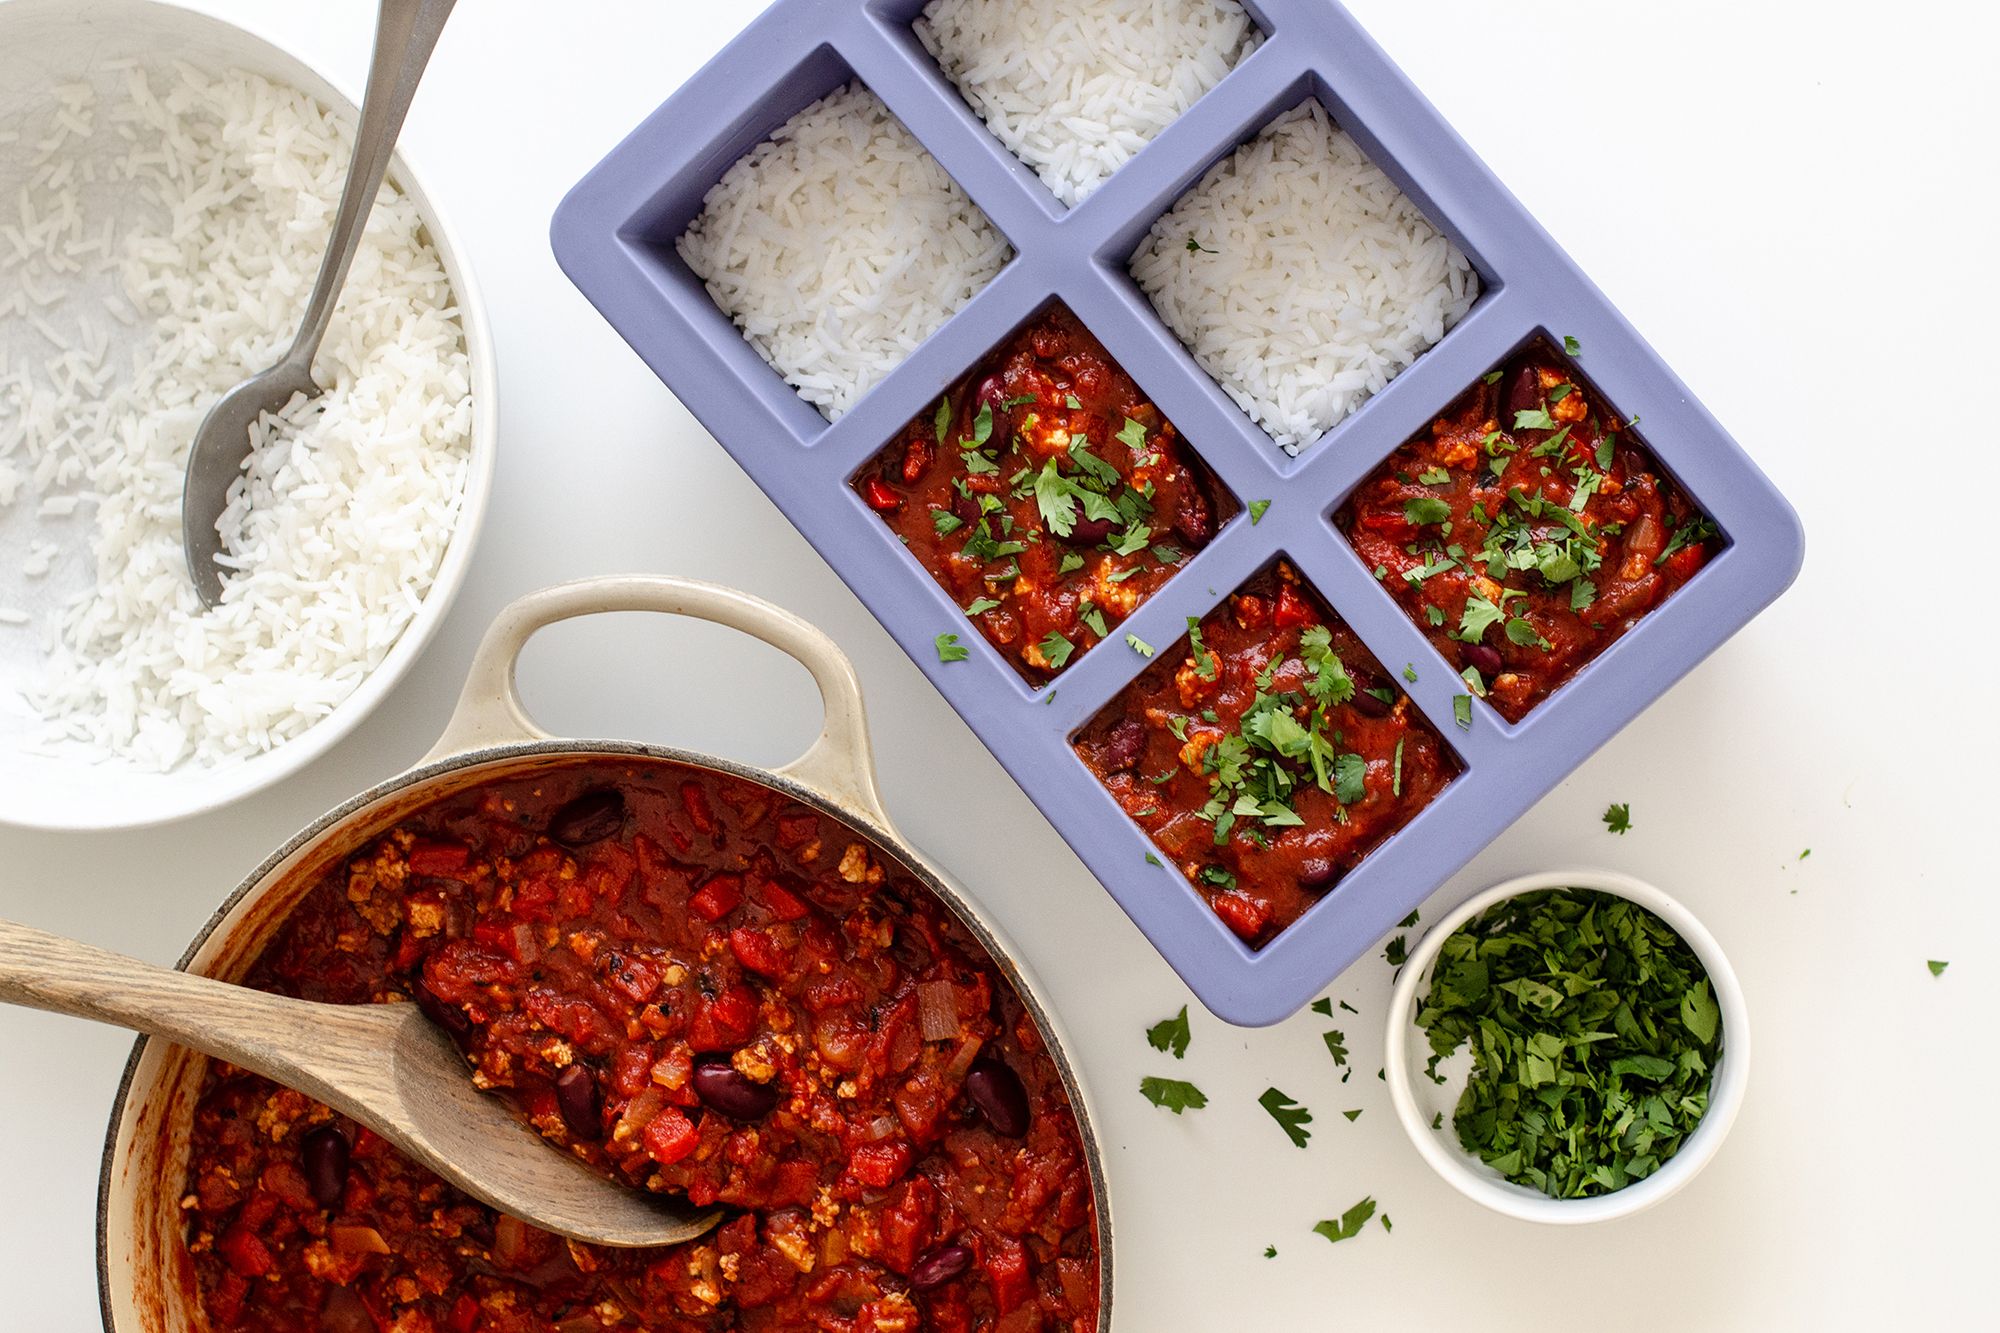 Cup Cubes Freezer Tray - 4 Cubes with a pot of chili and rice